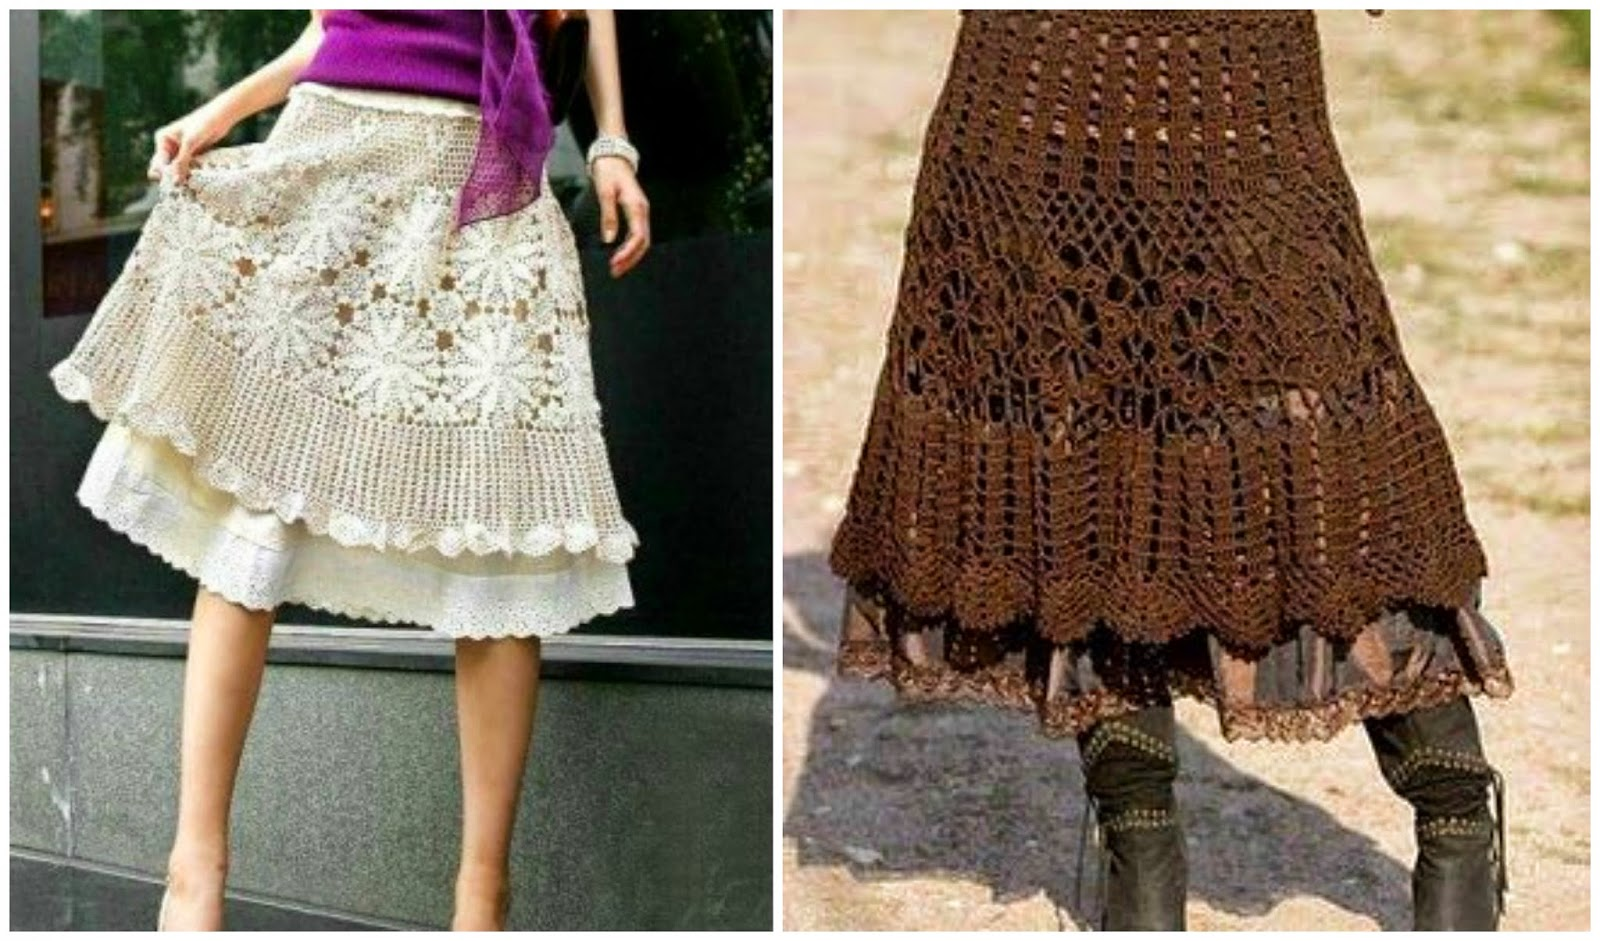 Crochet Skirt Pattern : Skirt 5 Skirt 6